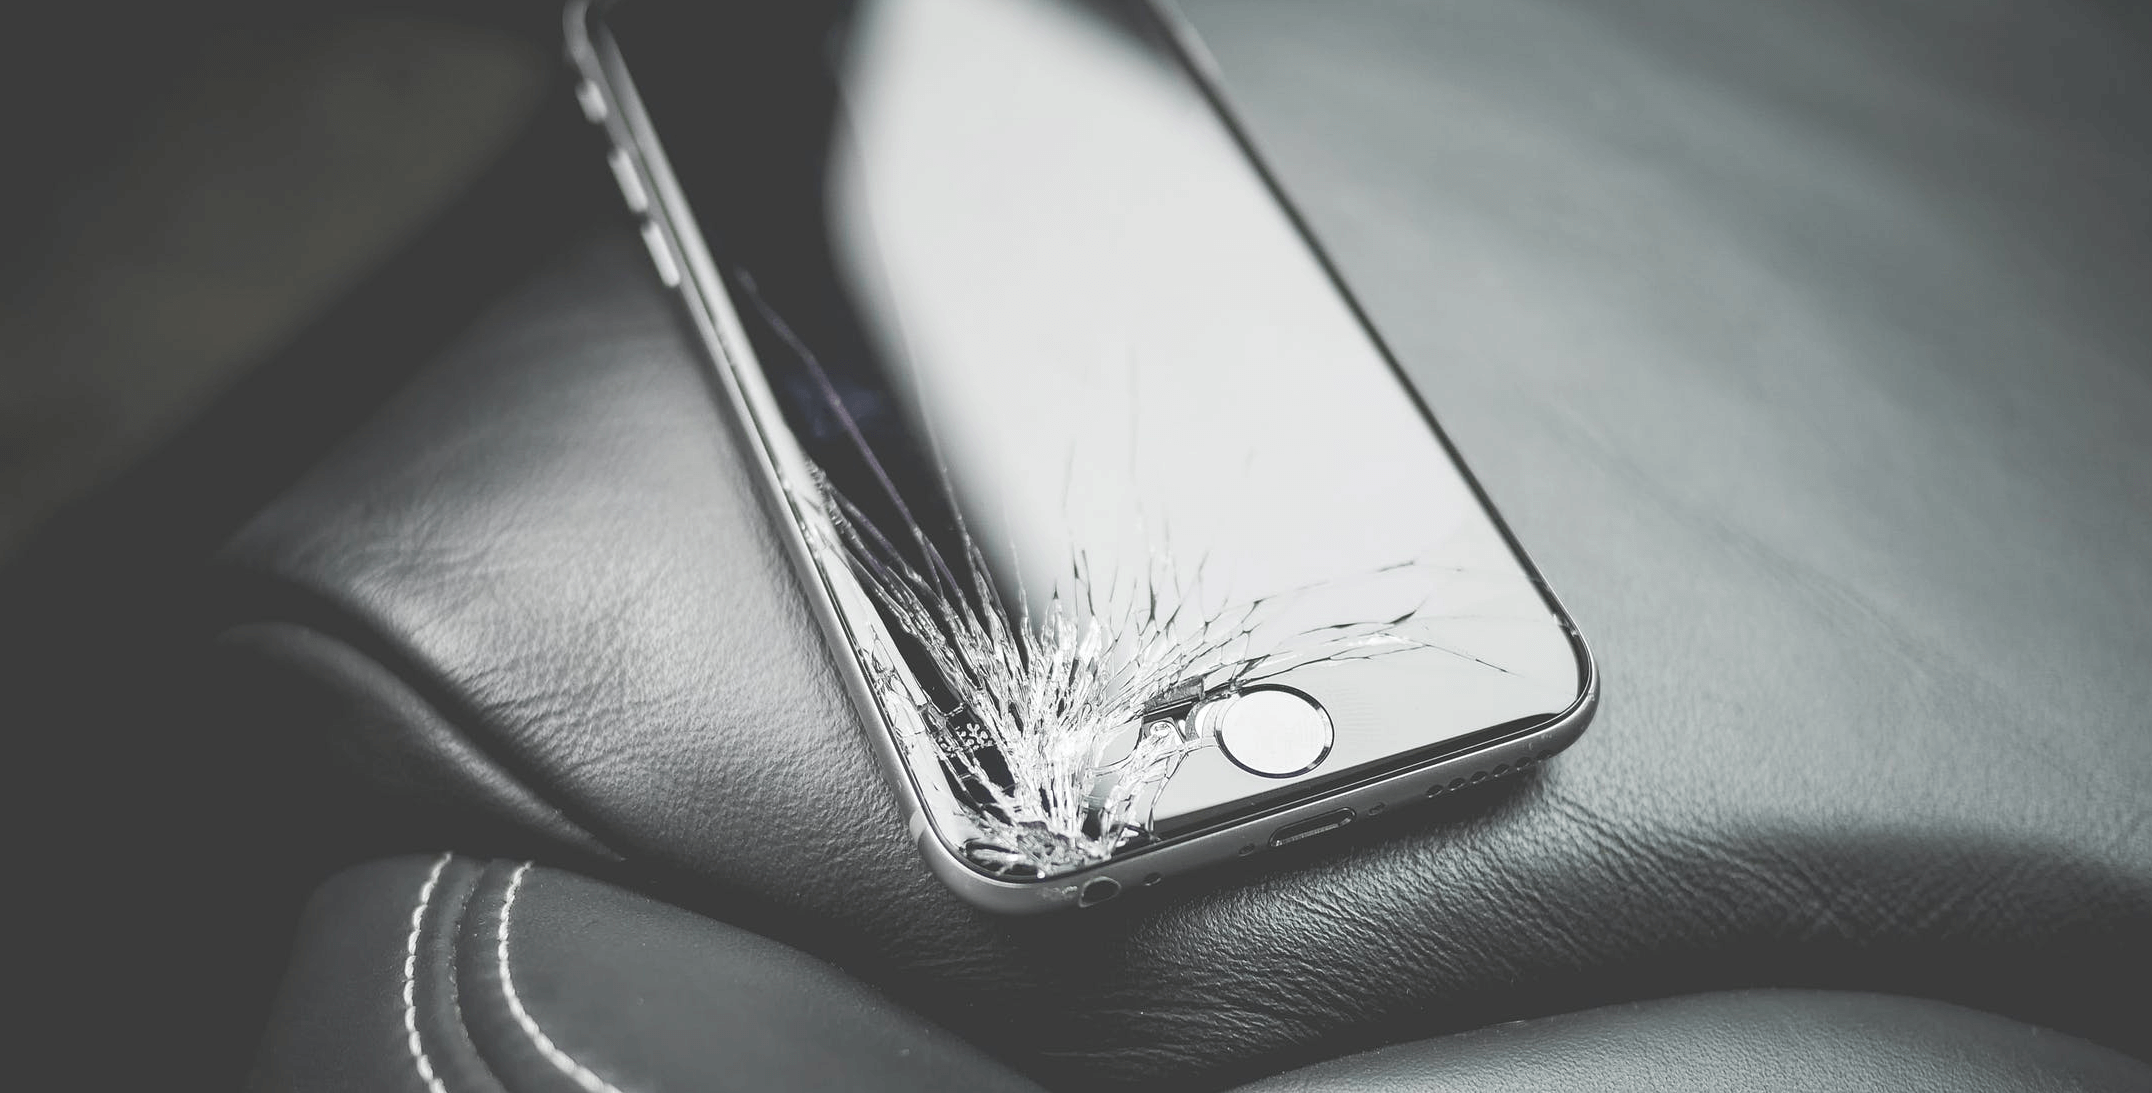 Iphone Repair In Toronto 06